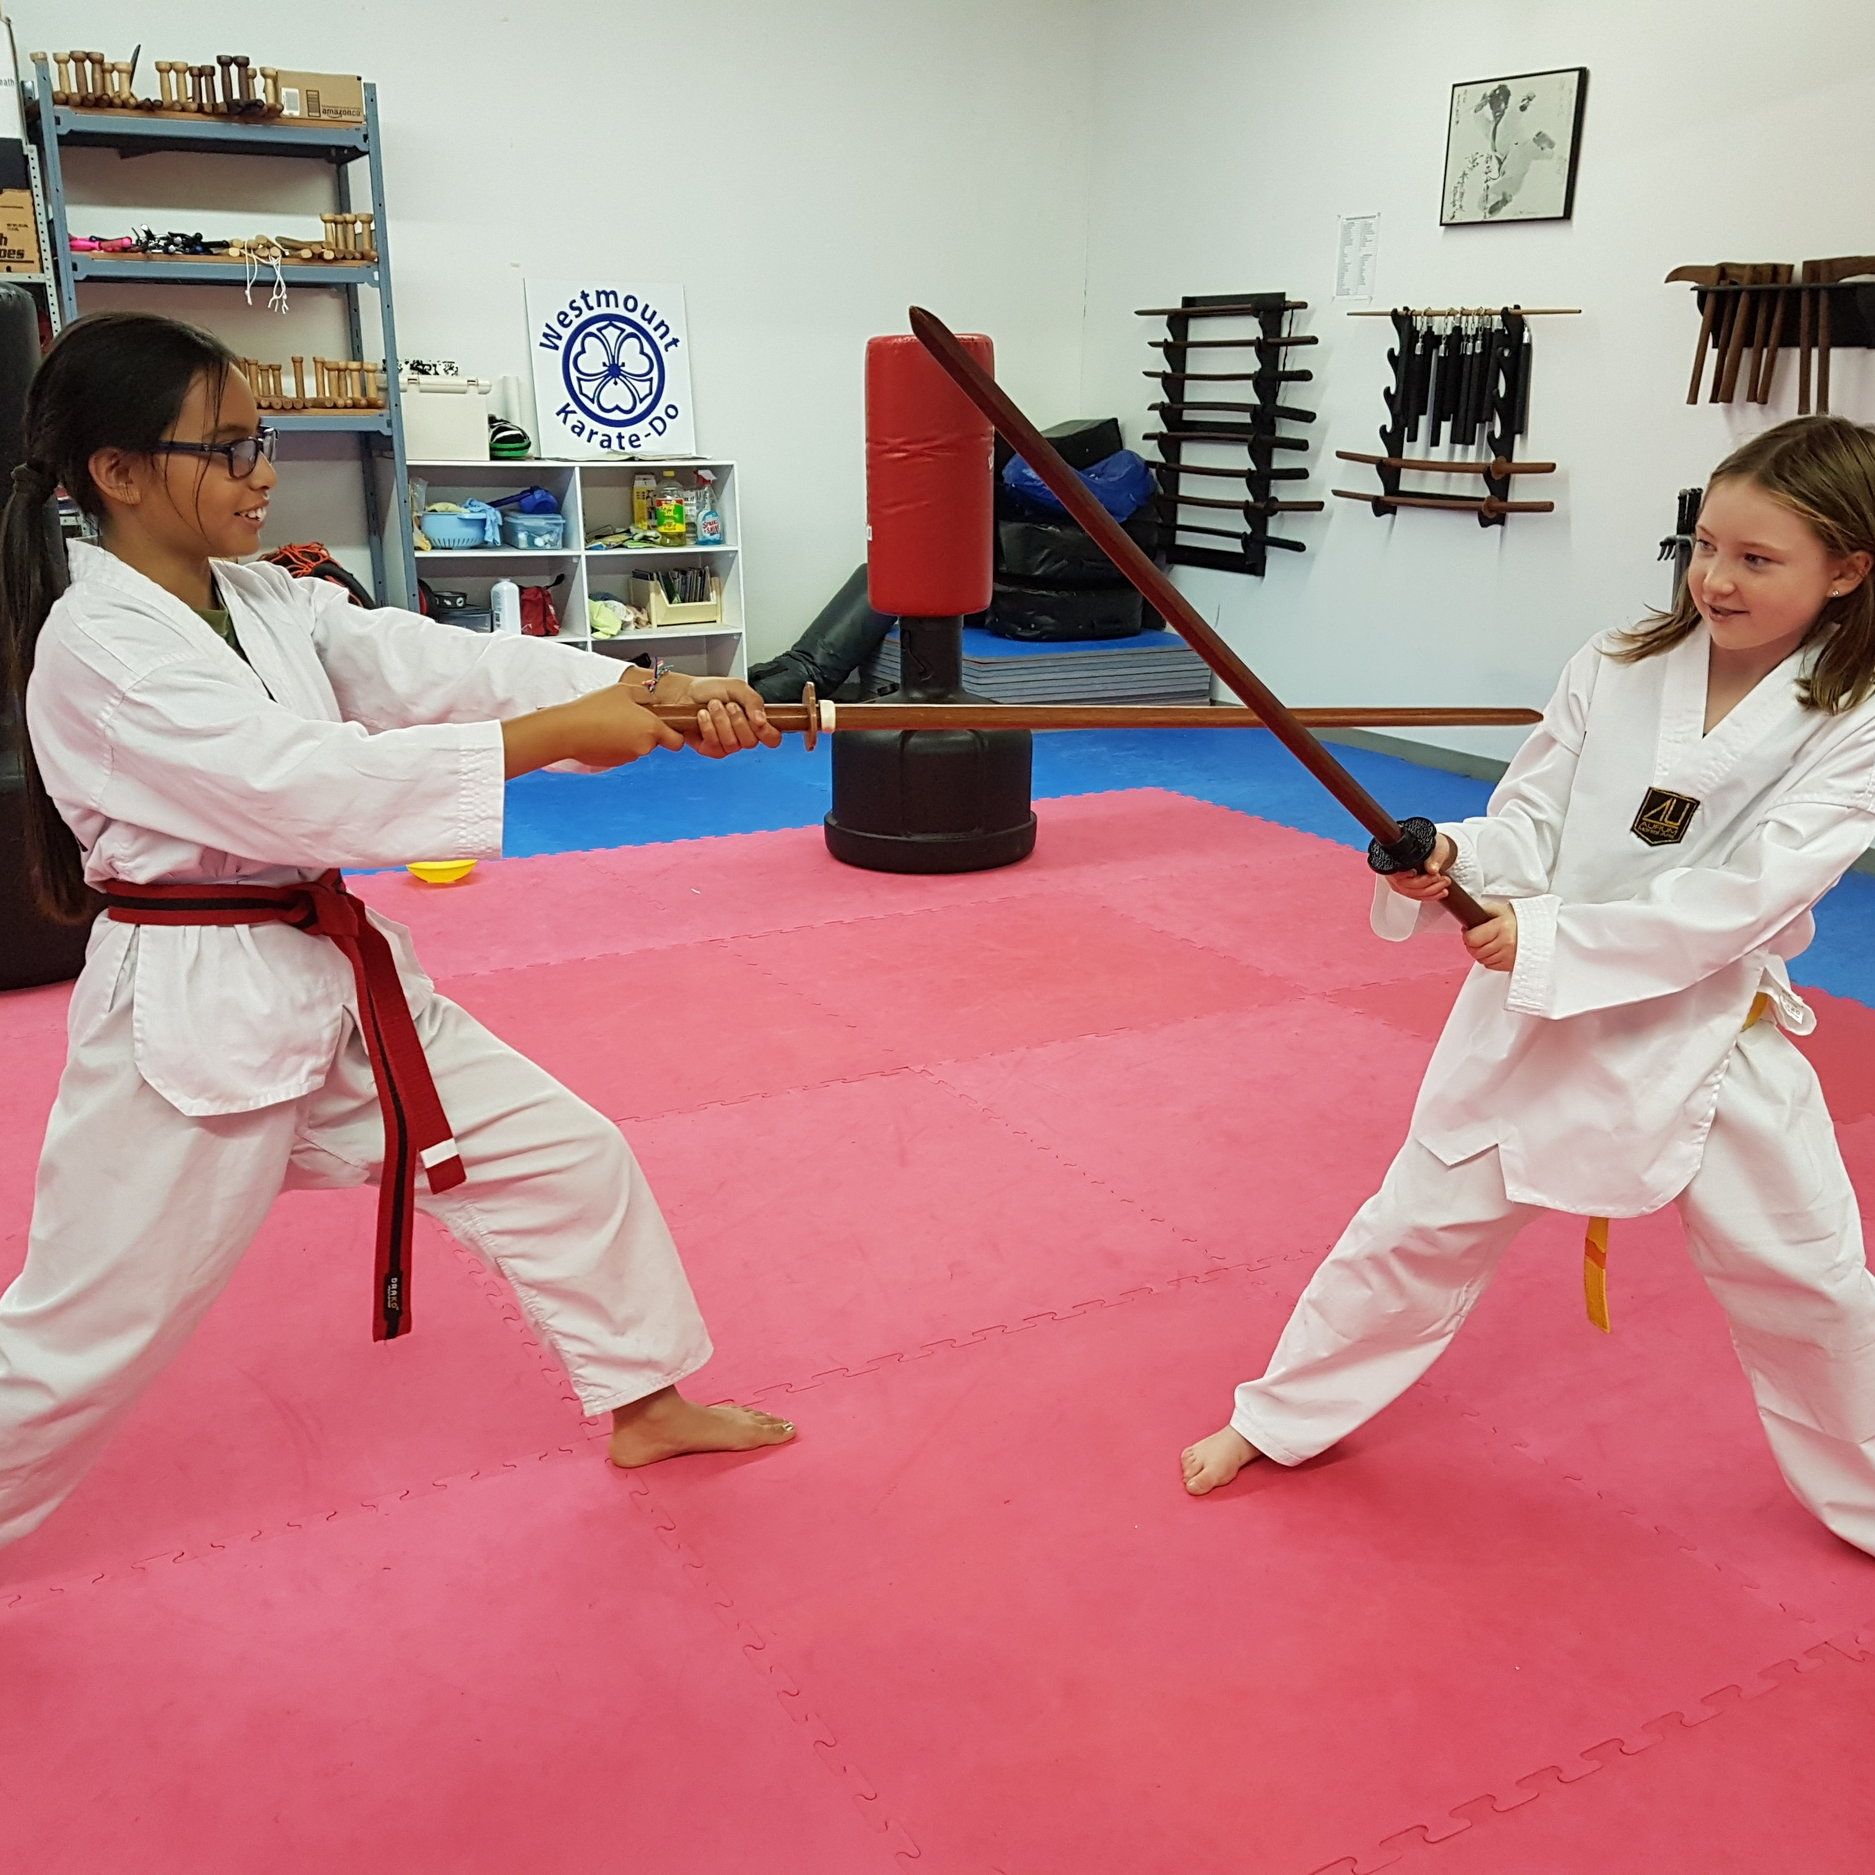 Ages 12+ All Levels - Mon/Wed 6:30-7:30This class is geared towards young teens, with an accelerated curriculum compared to the children's classes and a greater emphasis on quickly gaining proficiency with technical skills. Self defense is a central part of the curriculum and each class includes a strength and conditioning portion to prepare students for physical demands of martial arts. Weapons skills are a focus right away.